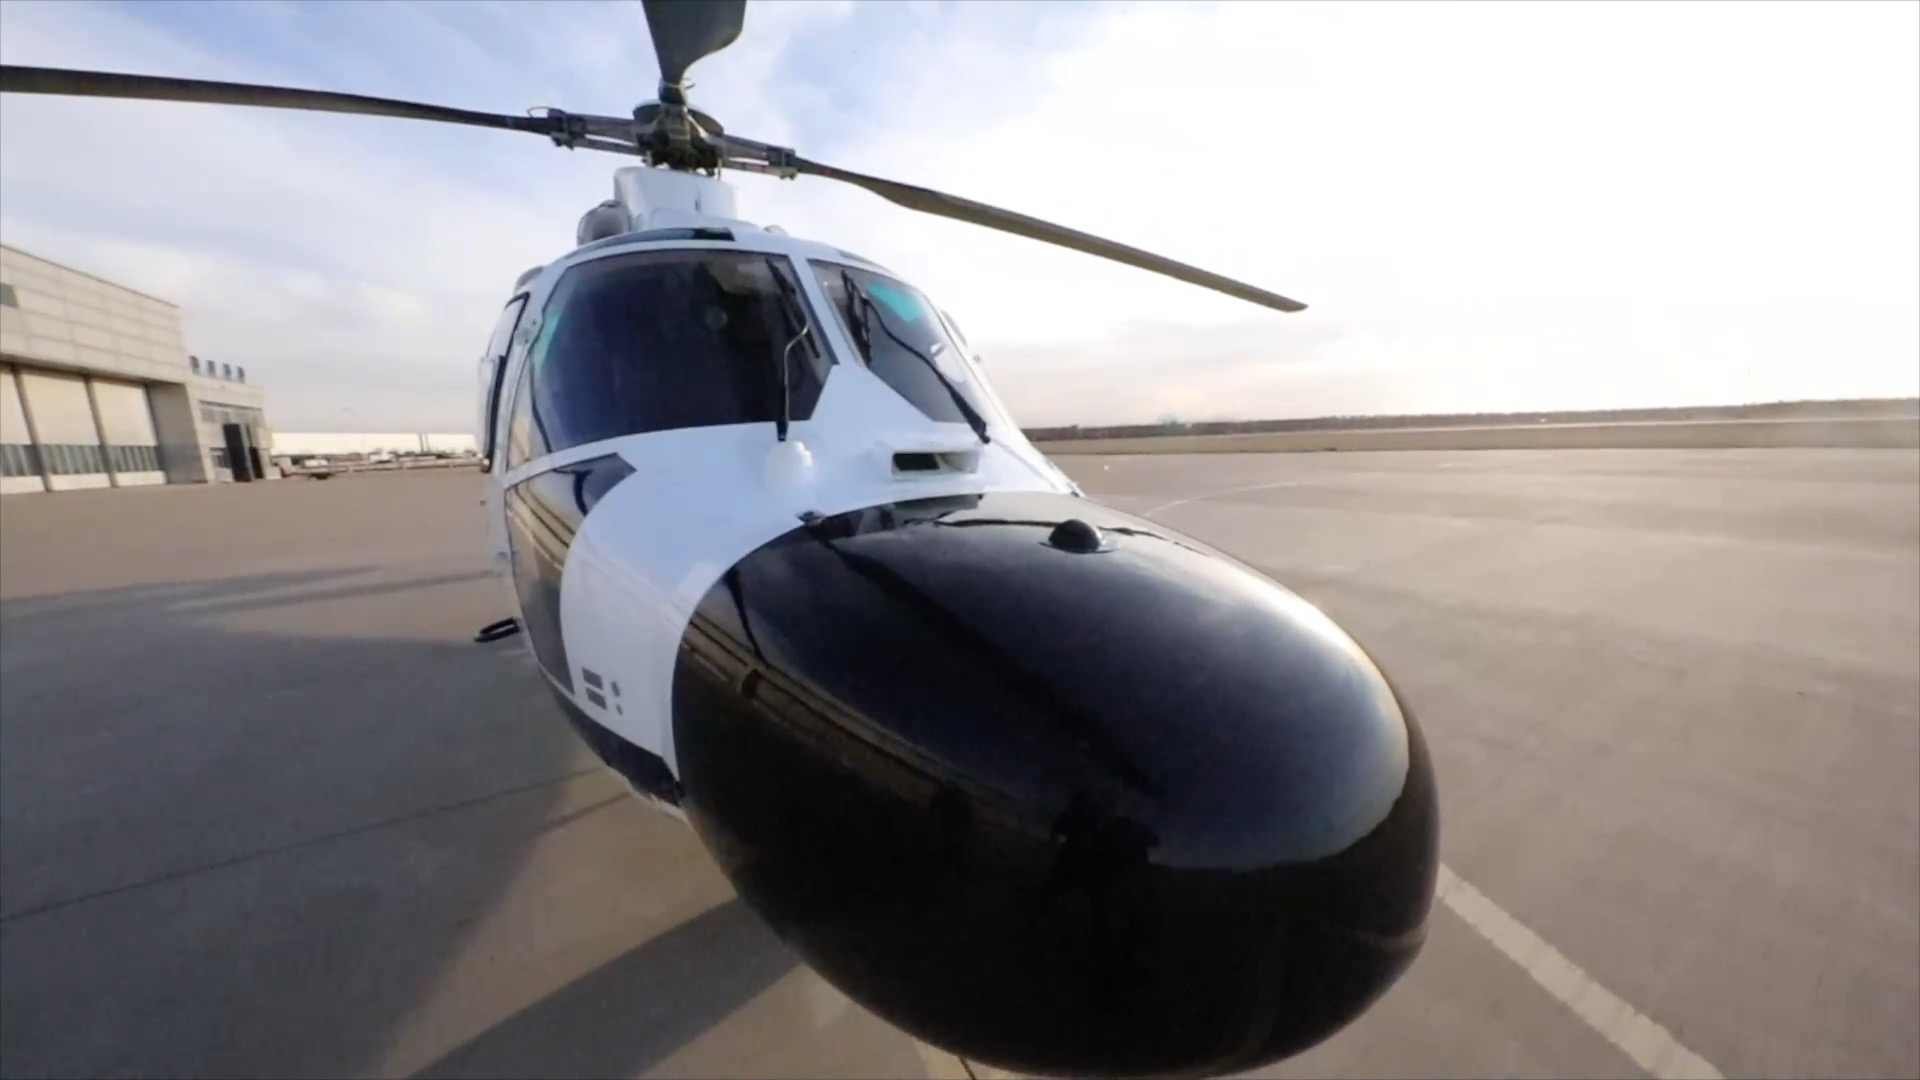 Tianjin-assembled AC312E helicopter makes maiden flight